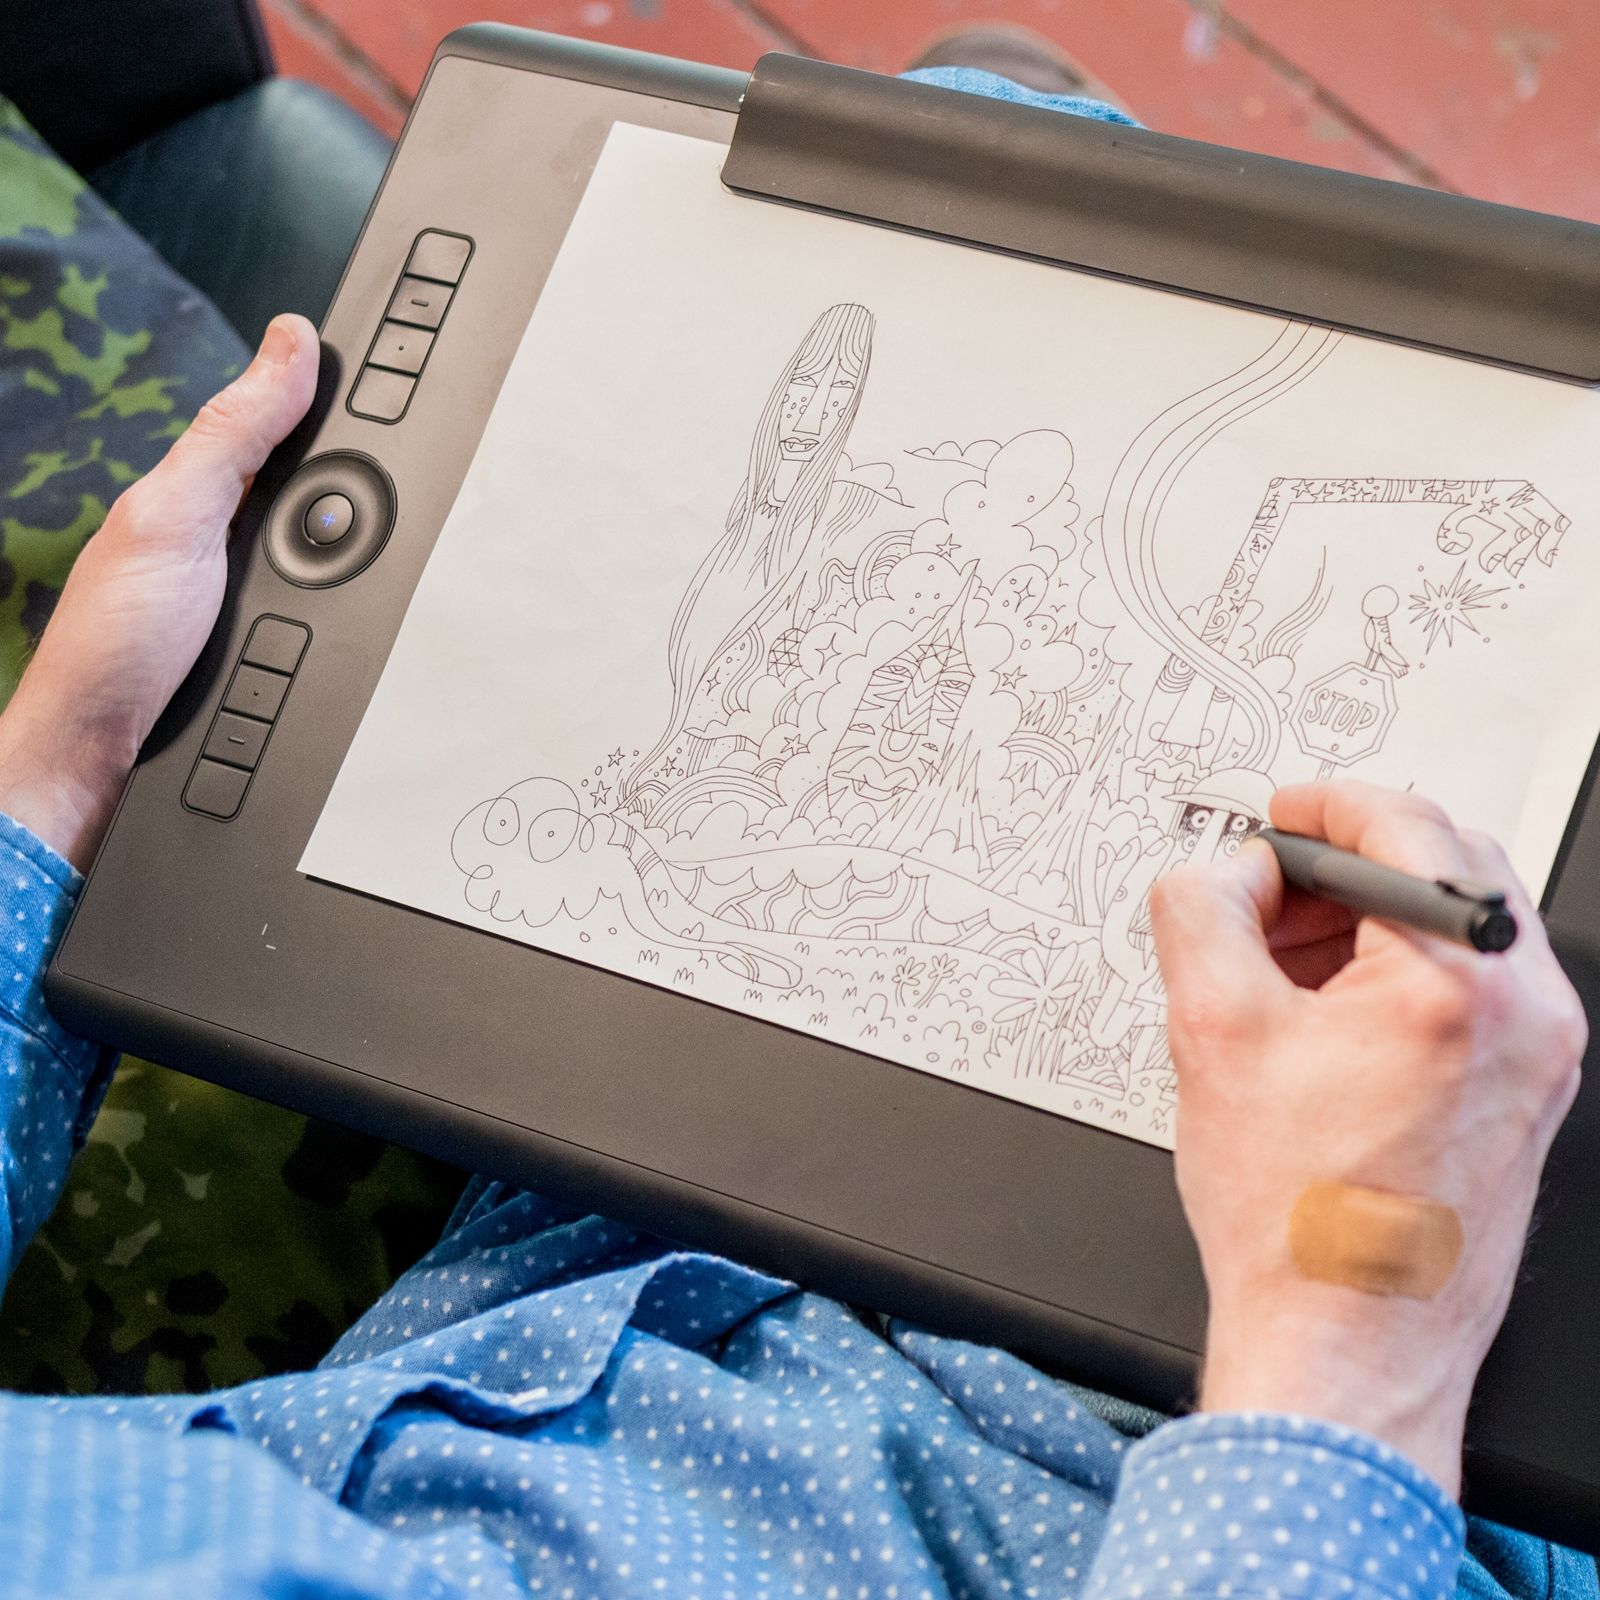 Draw on paper and screen at the same time, with the new Wacom Intuos